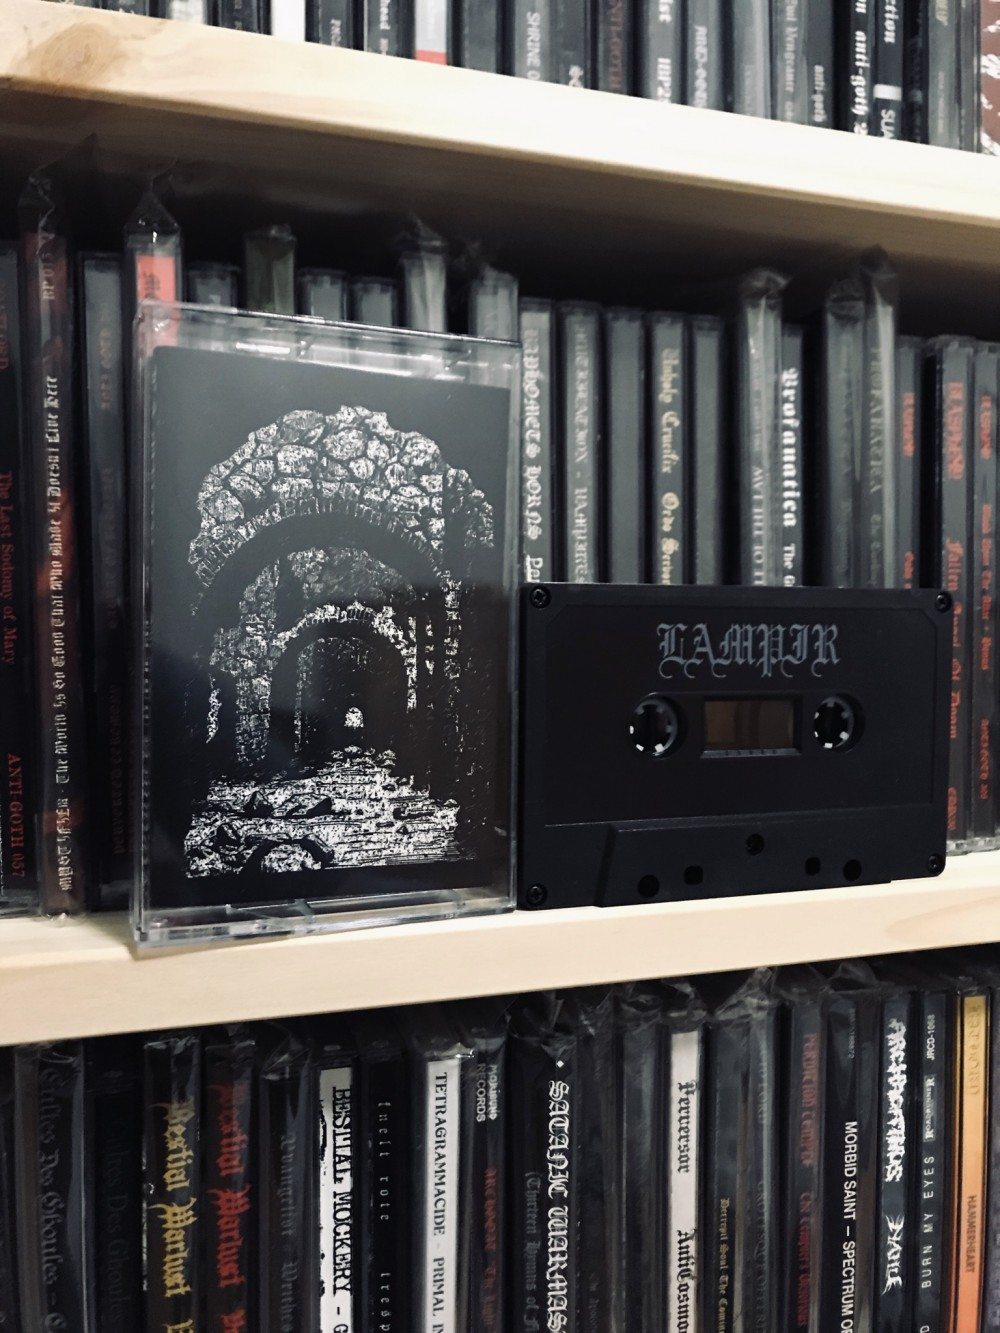 Lampir / Witchmoon - Lampir / Witchmoon Cassette Photo